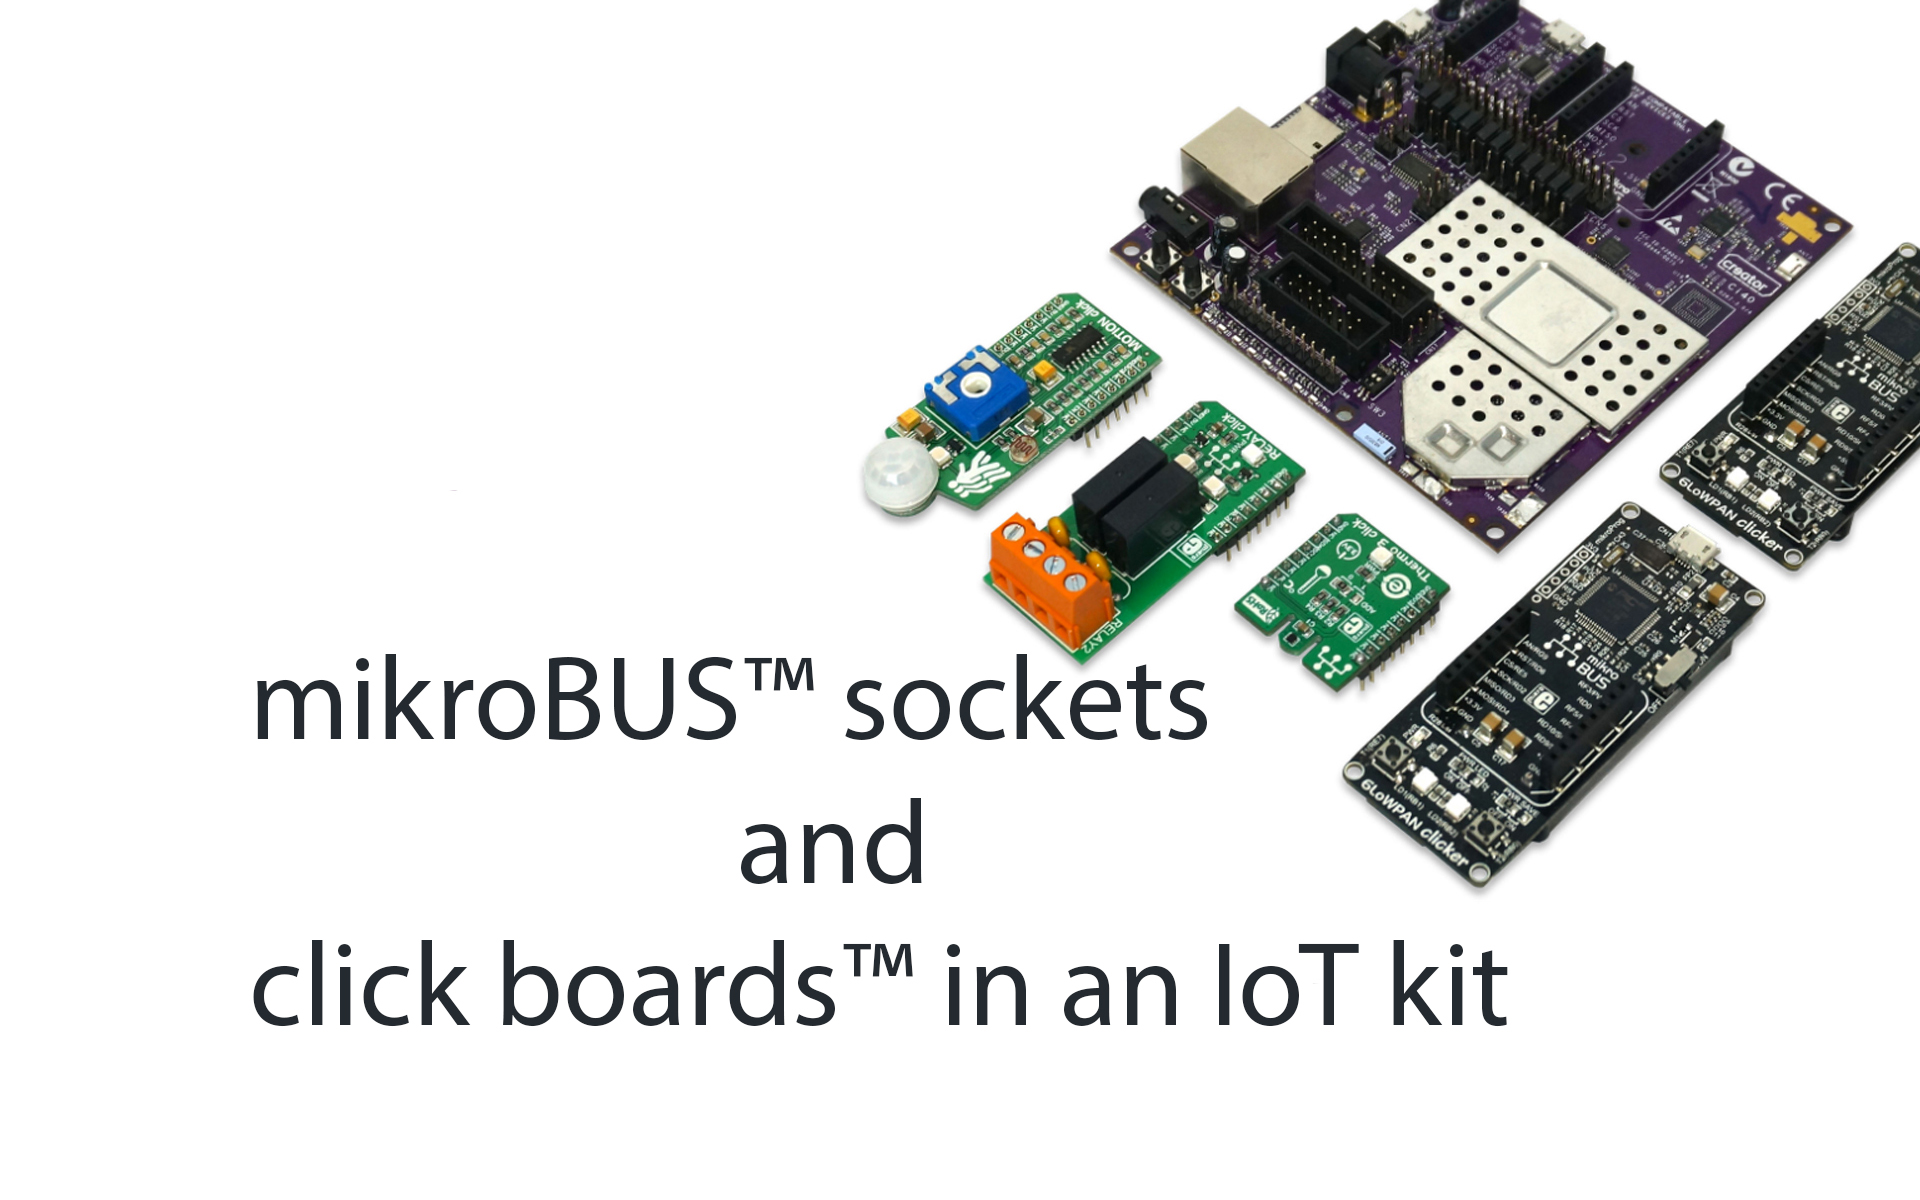 mikroBUS™ sockets, click boards™ and clicker boards in an IoT Kit